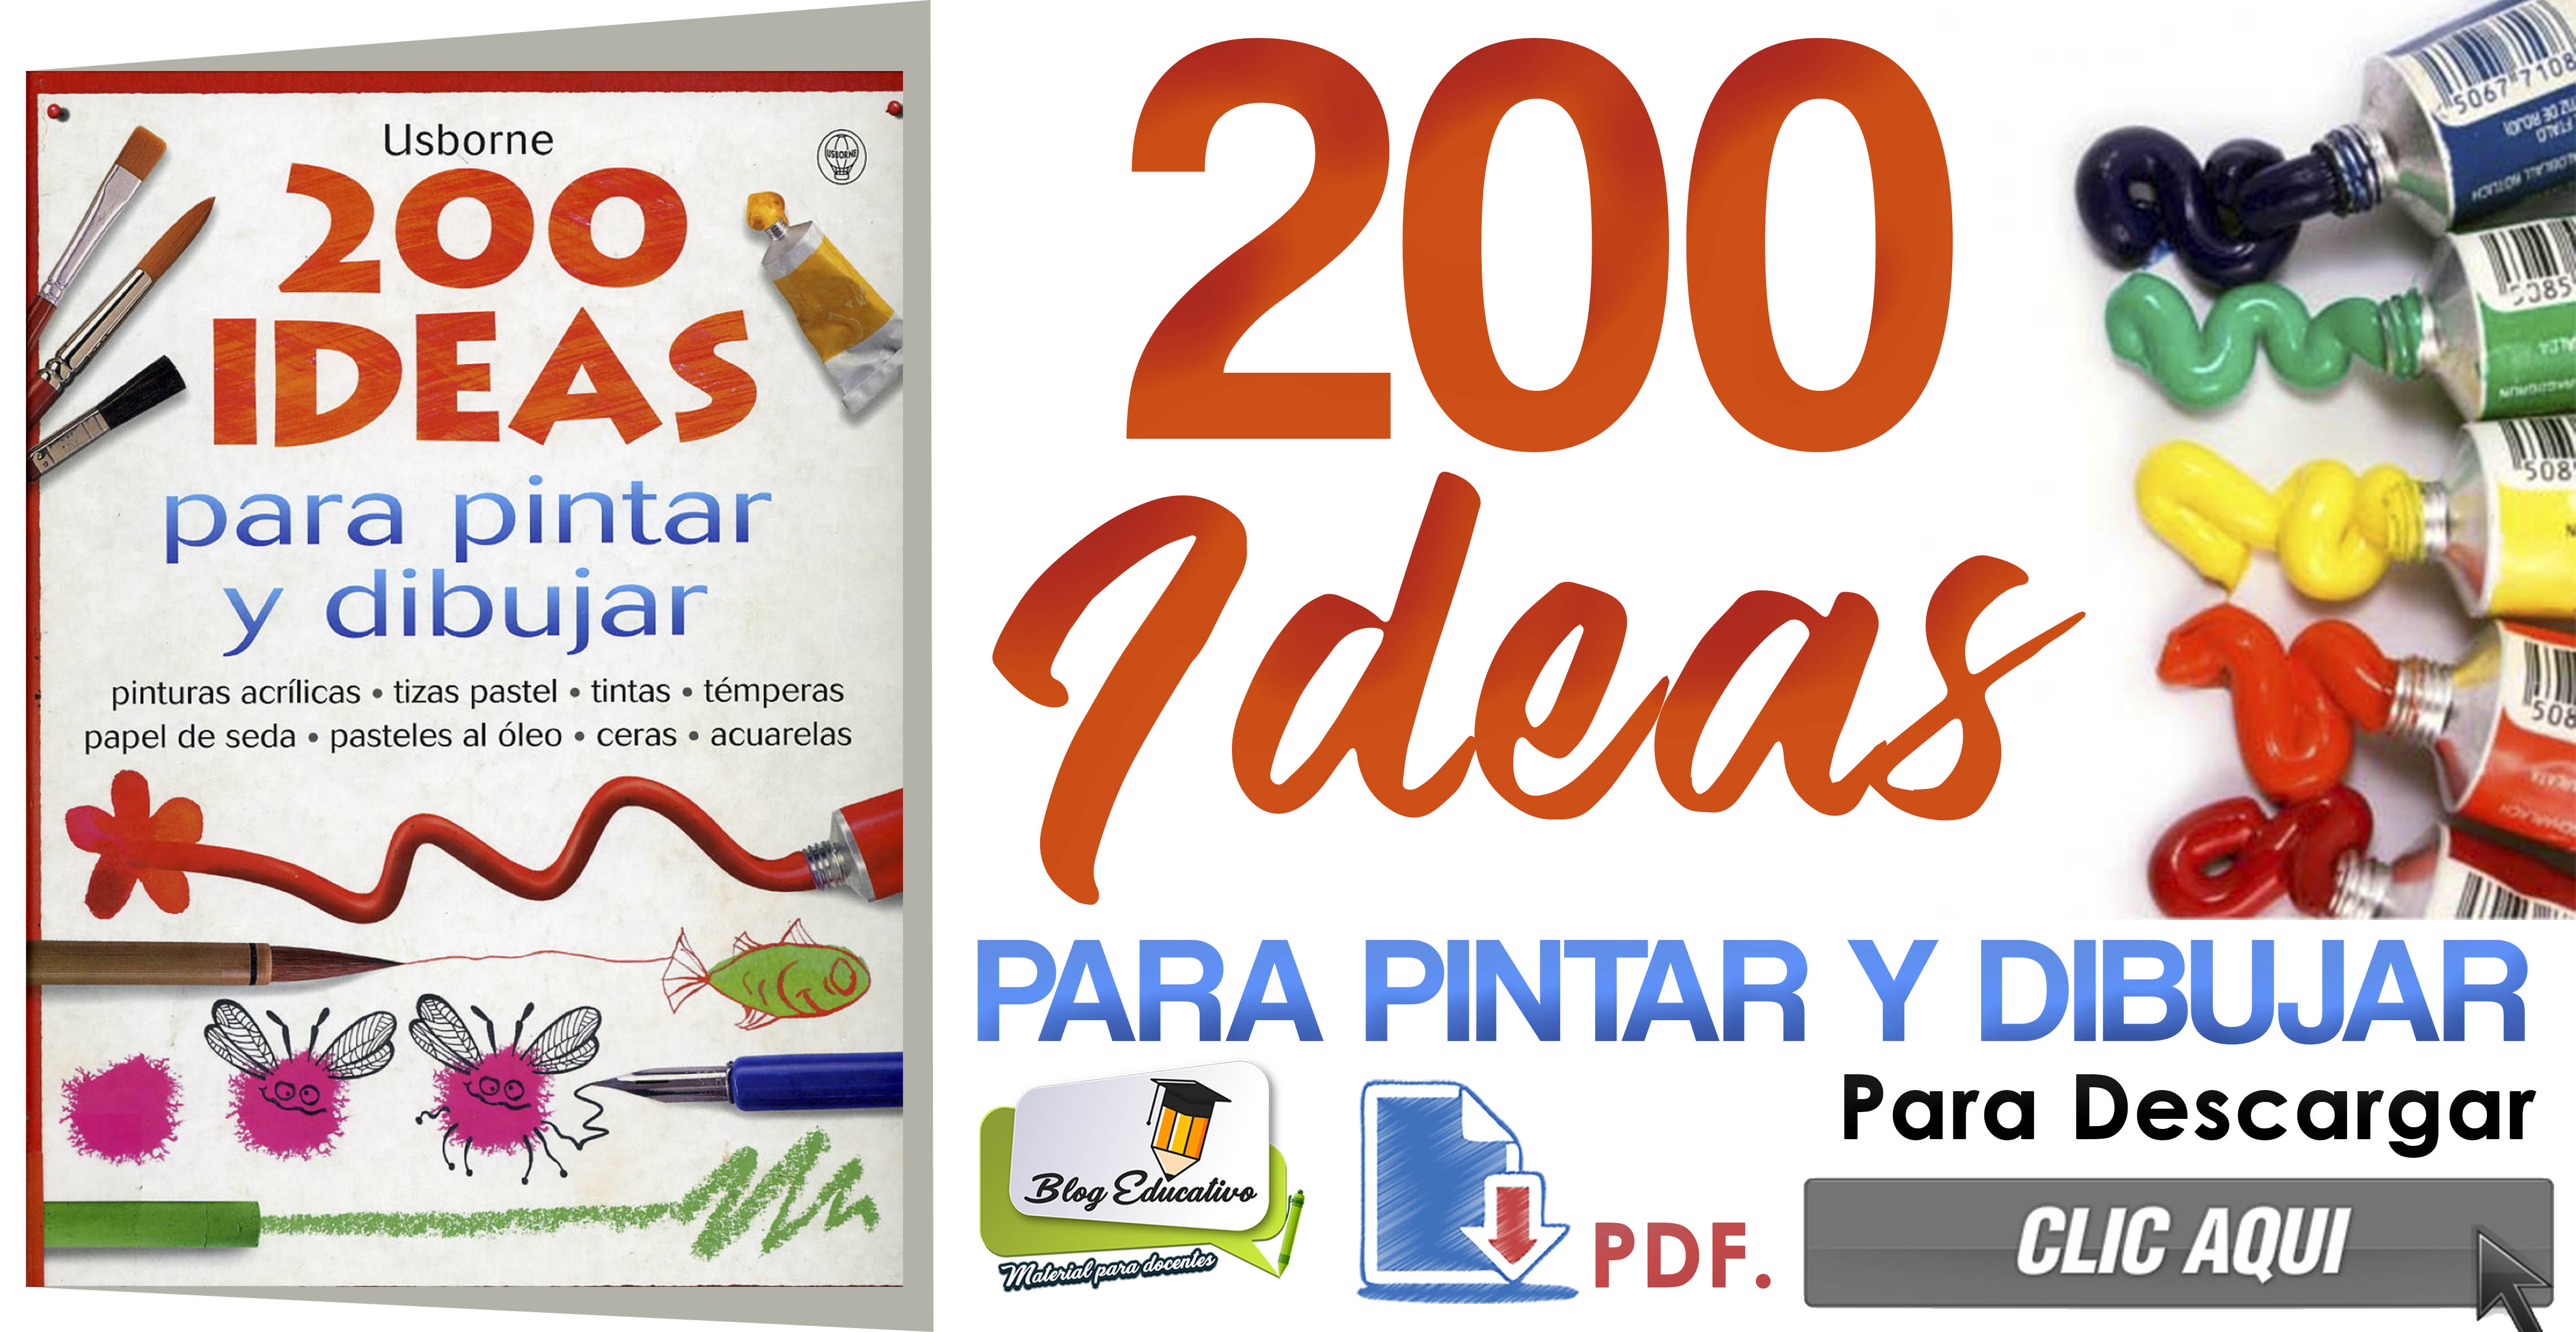 200 Ideas para pintar y dibujar gratis - Blog Educativo